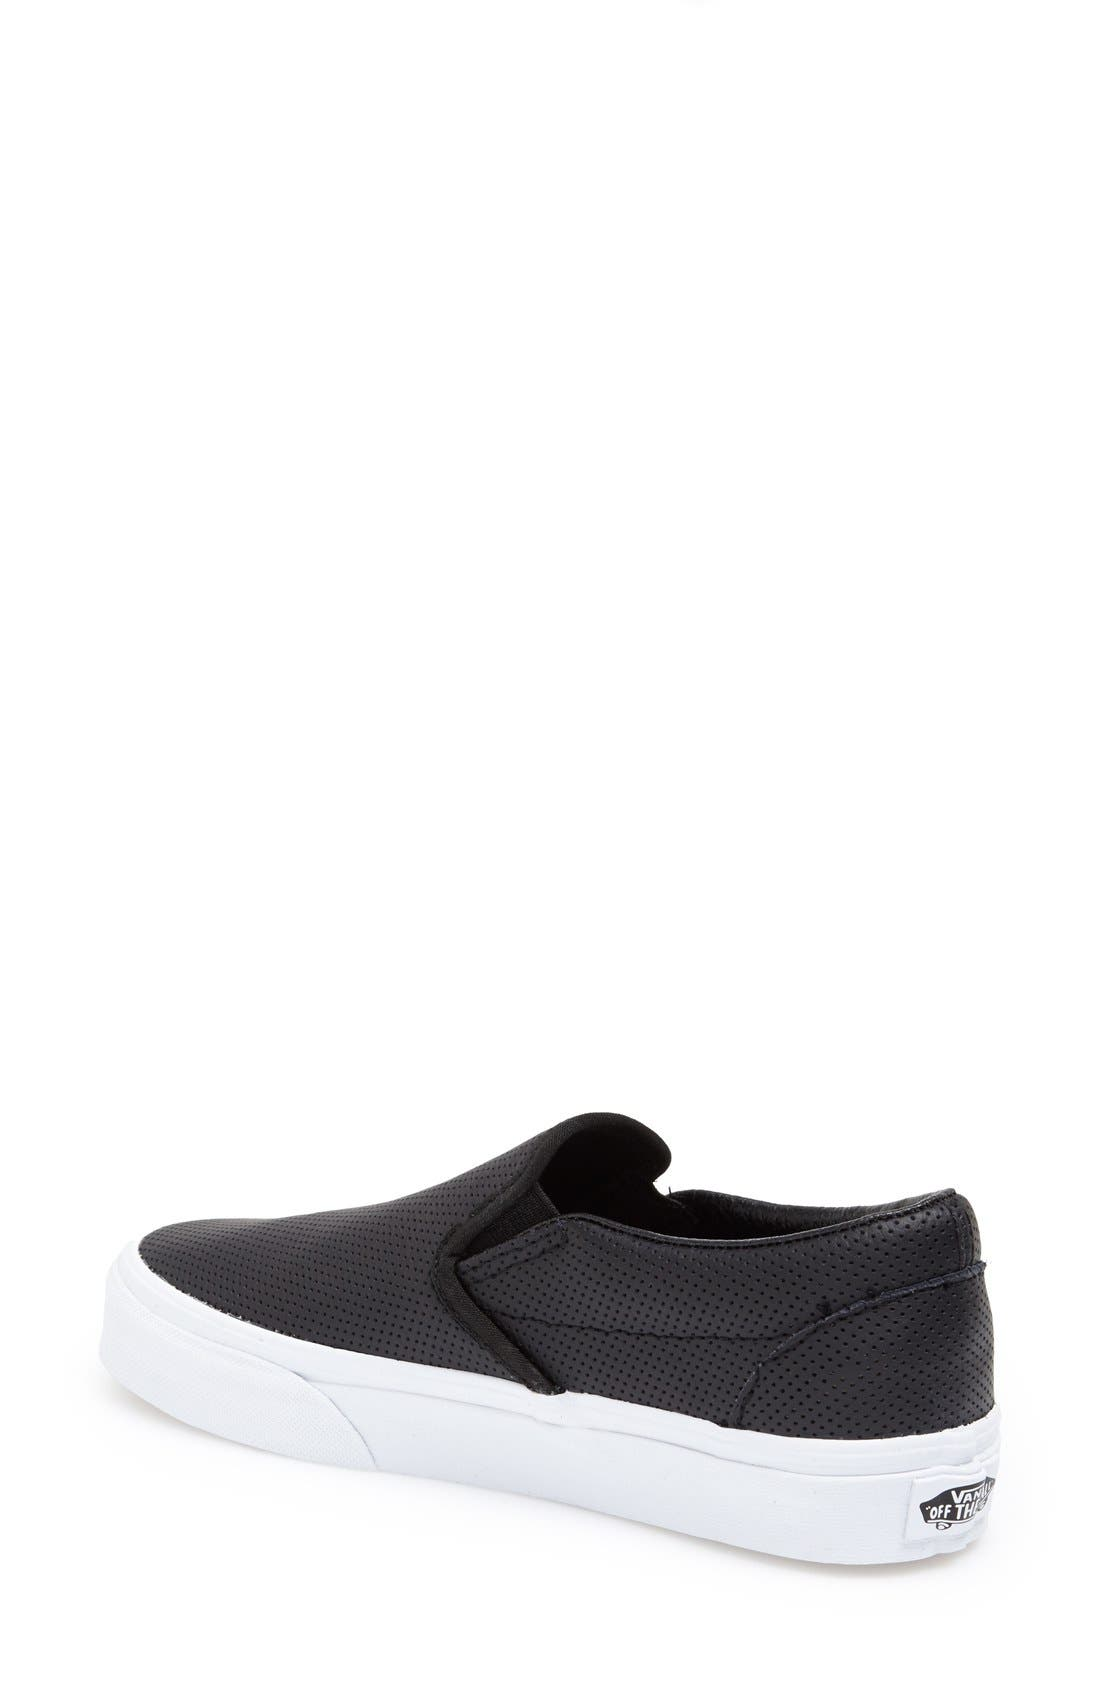 VANS, 'Classic' Sneaker, Alternate thumbnail 3, color, LEATHER BLACK